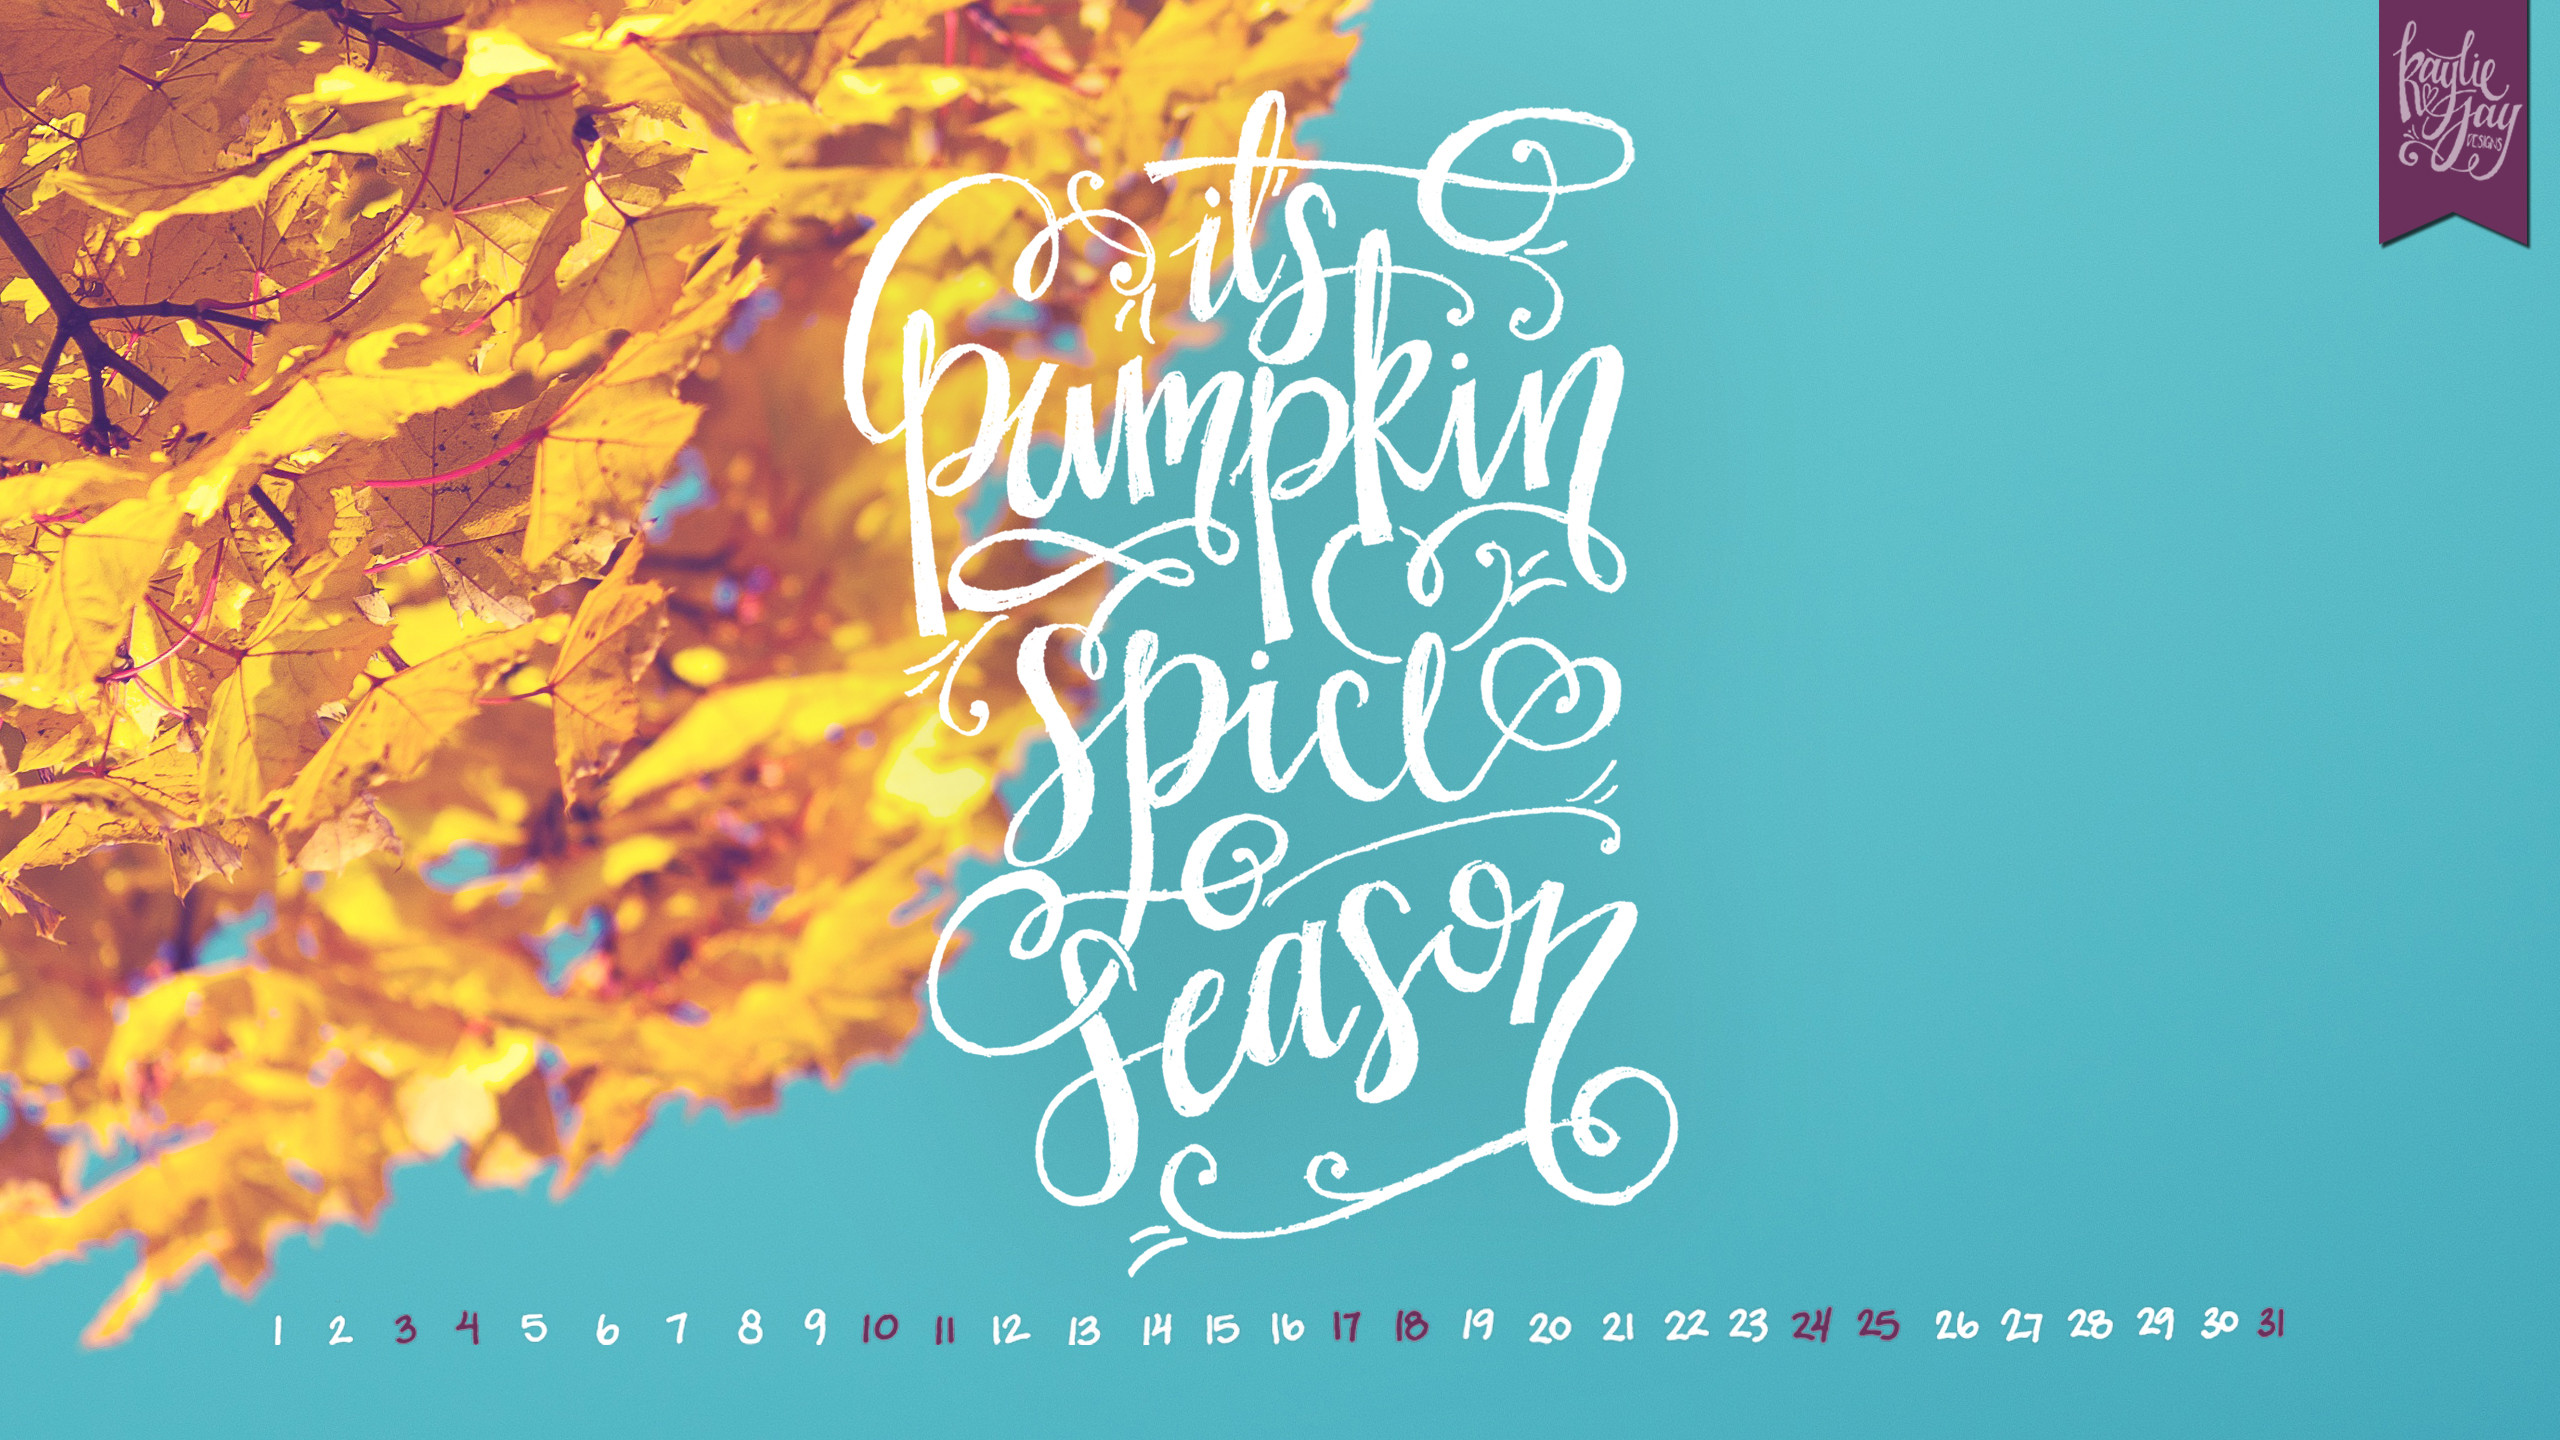 High Quality 2560x1440 October Desktop Wallpaper | | Device Decor | Pinterest |  Wallpaper And Doodles